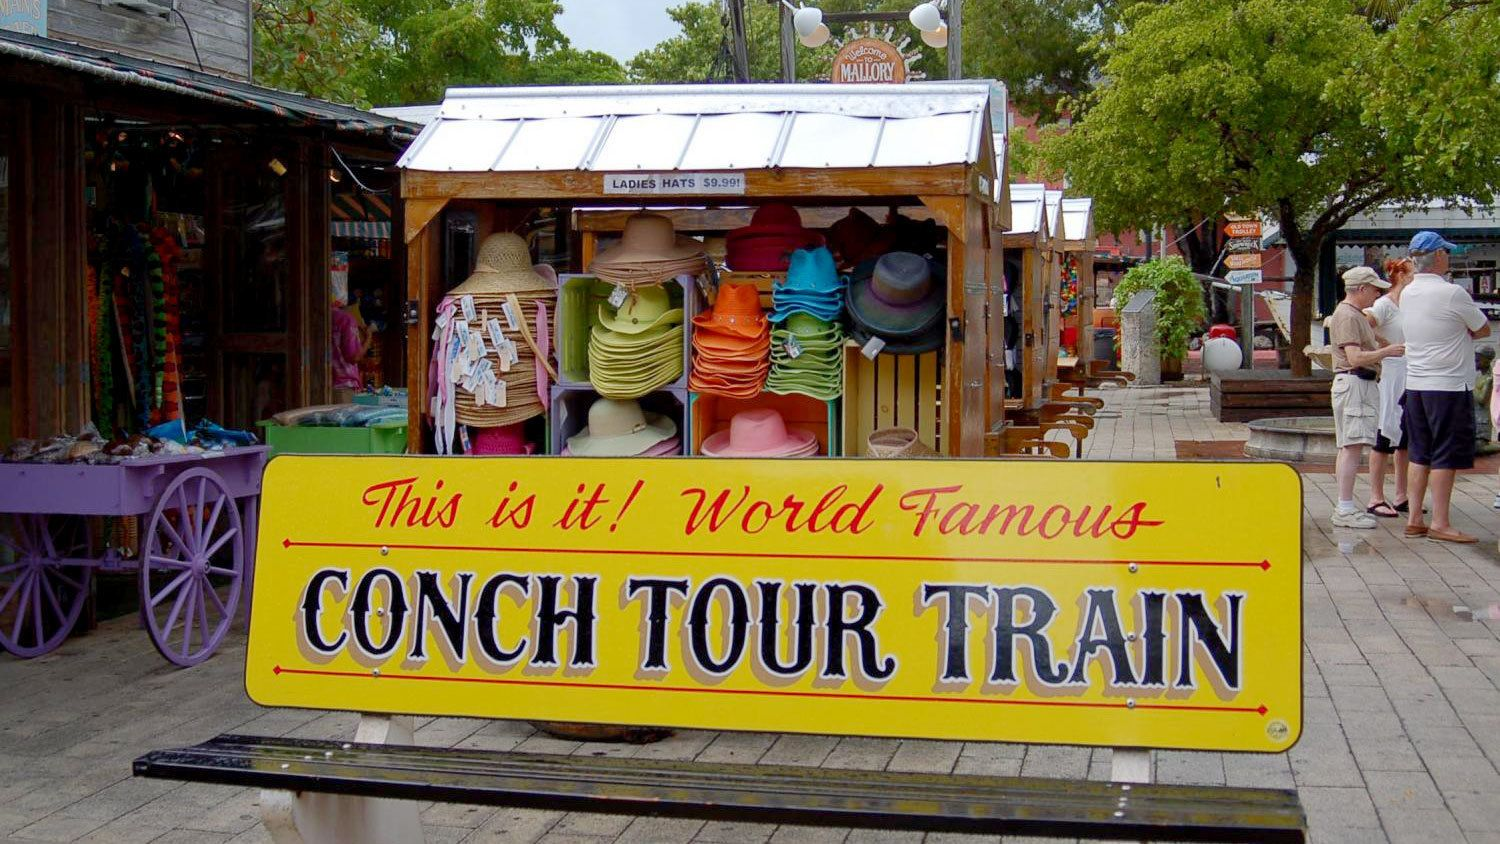 Bench for the Conch Tour Train